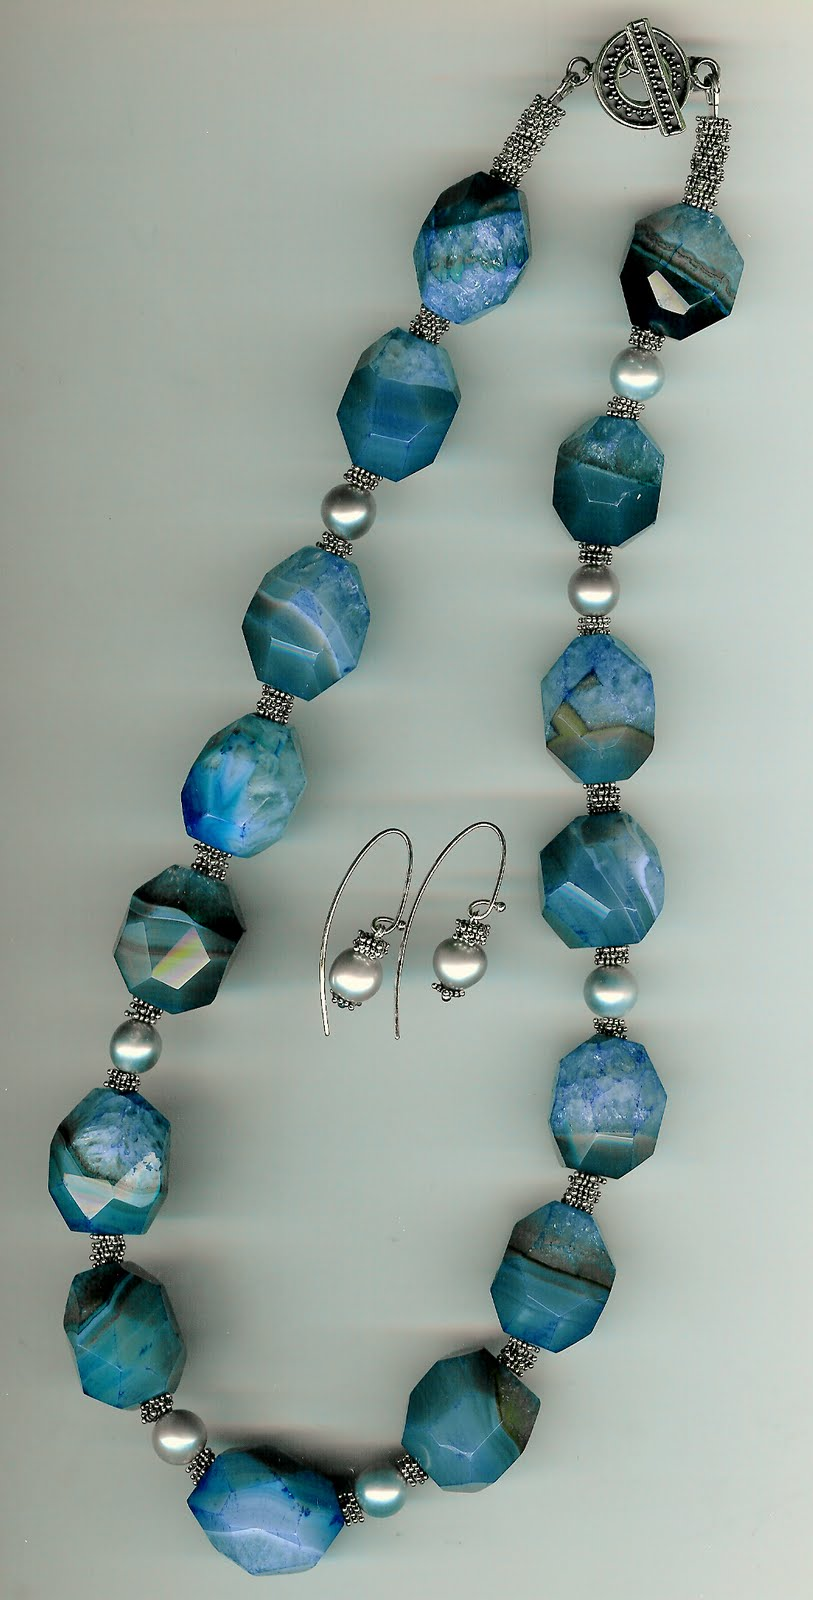 179. Blue Agate, Grey Akoya pearls with Bali Sterling Silver + Earrings